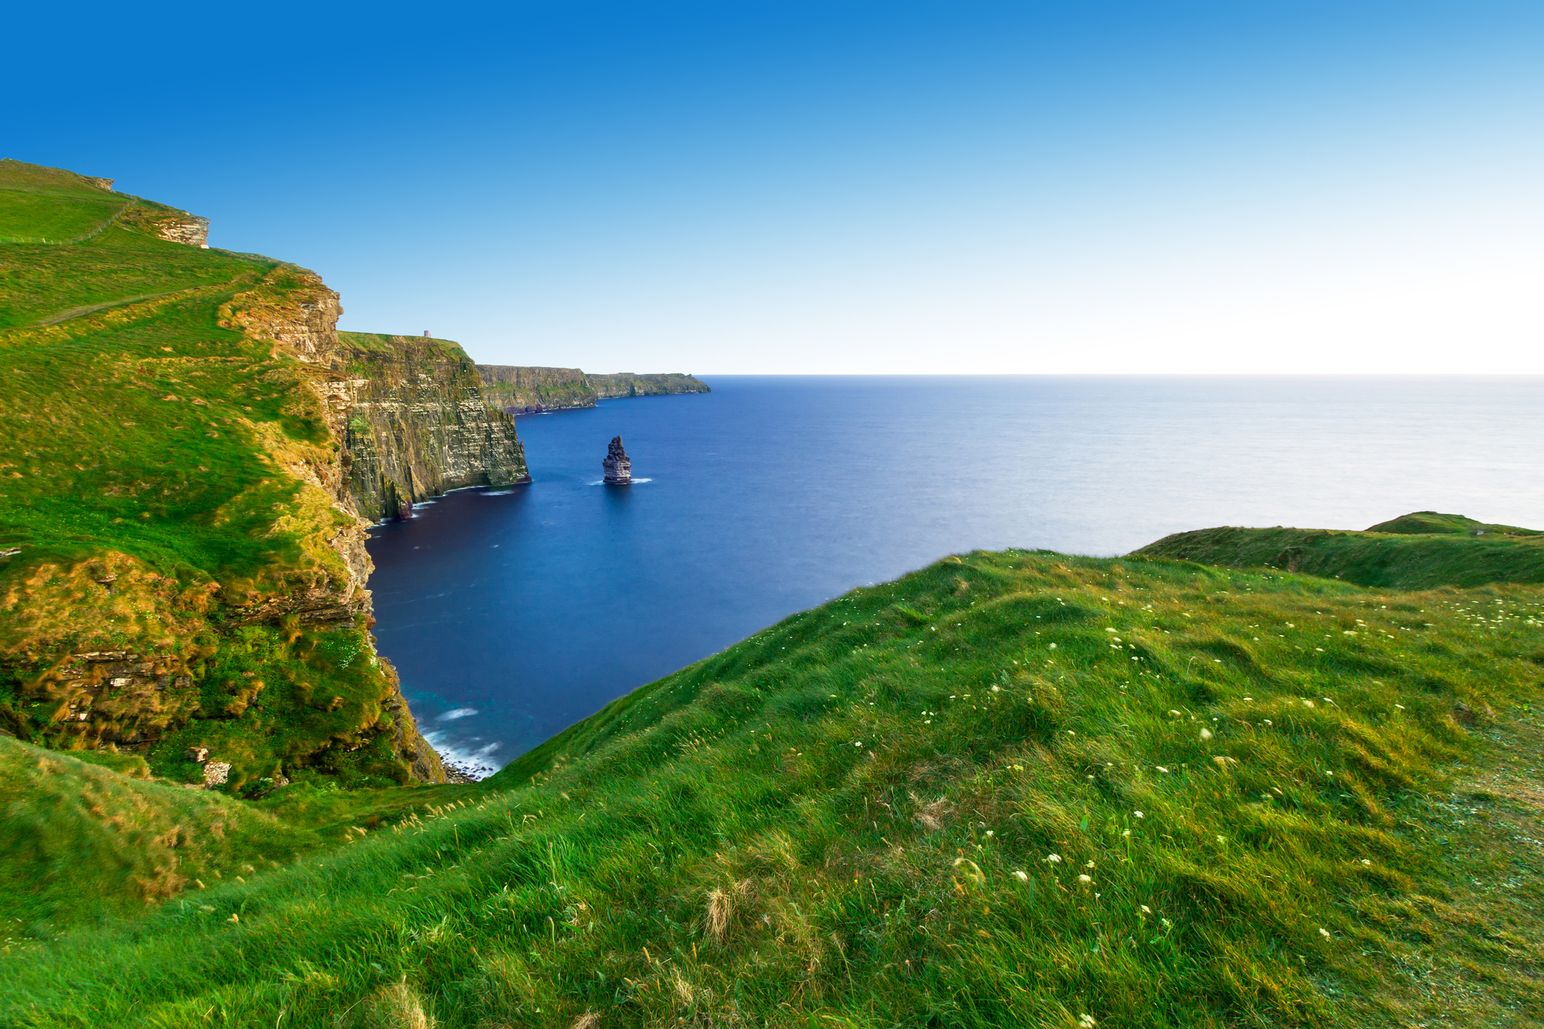 The Cliffs of Moher, County Clare are one of the most spectacular filming locations in Ireland